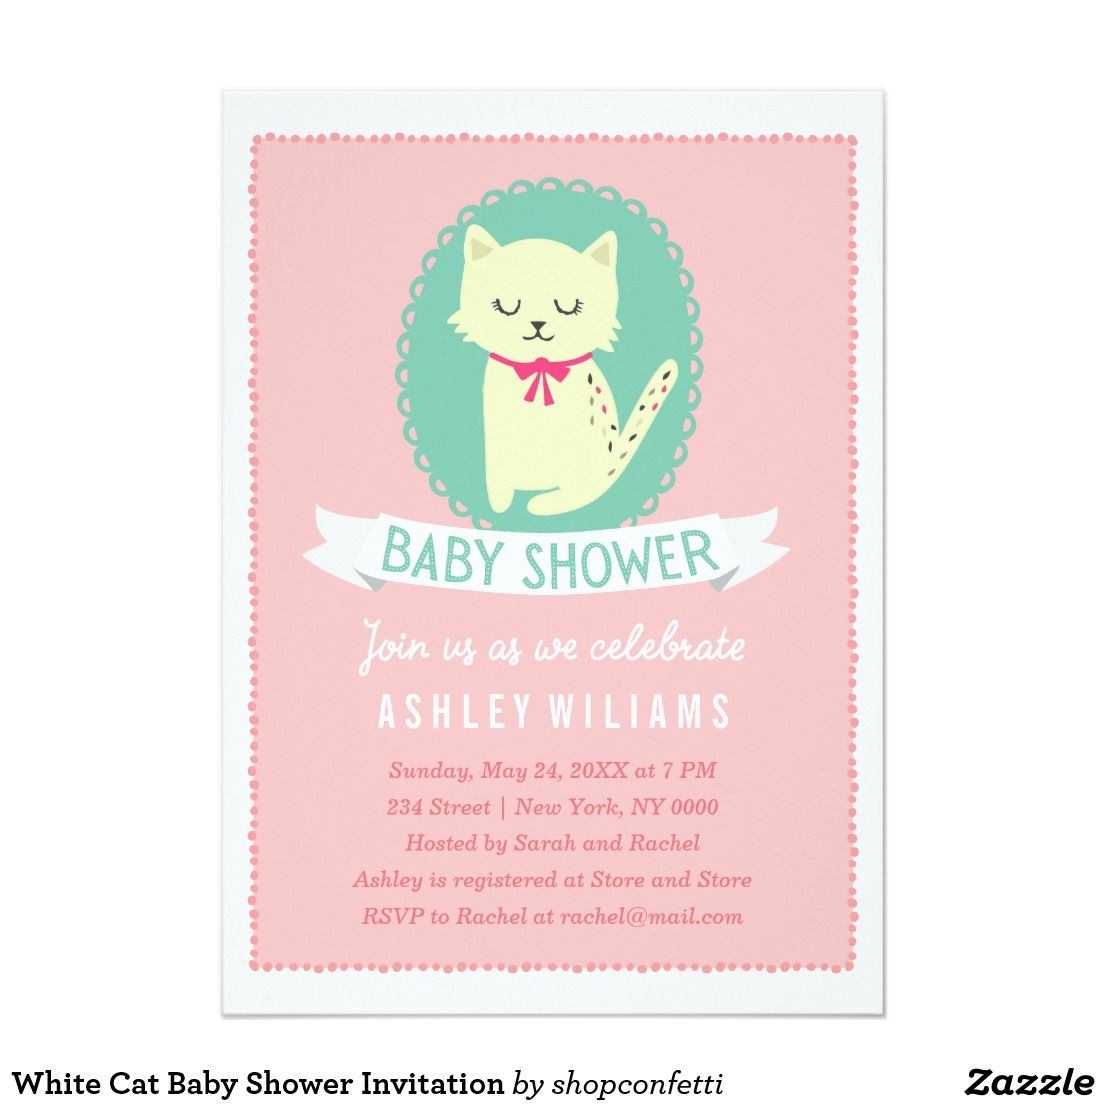 White Cat Baby Shower Invitation Zazzle Com Cat Baby Shower Invitations Cat Baby Shower Baby Girl Invitations